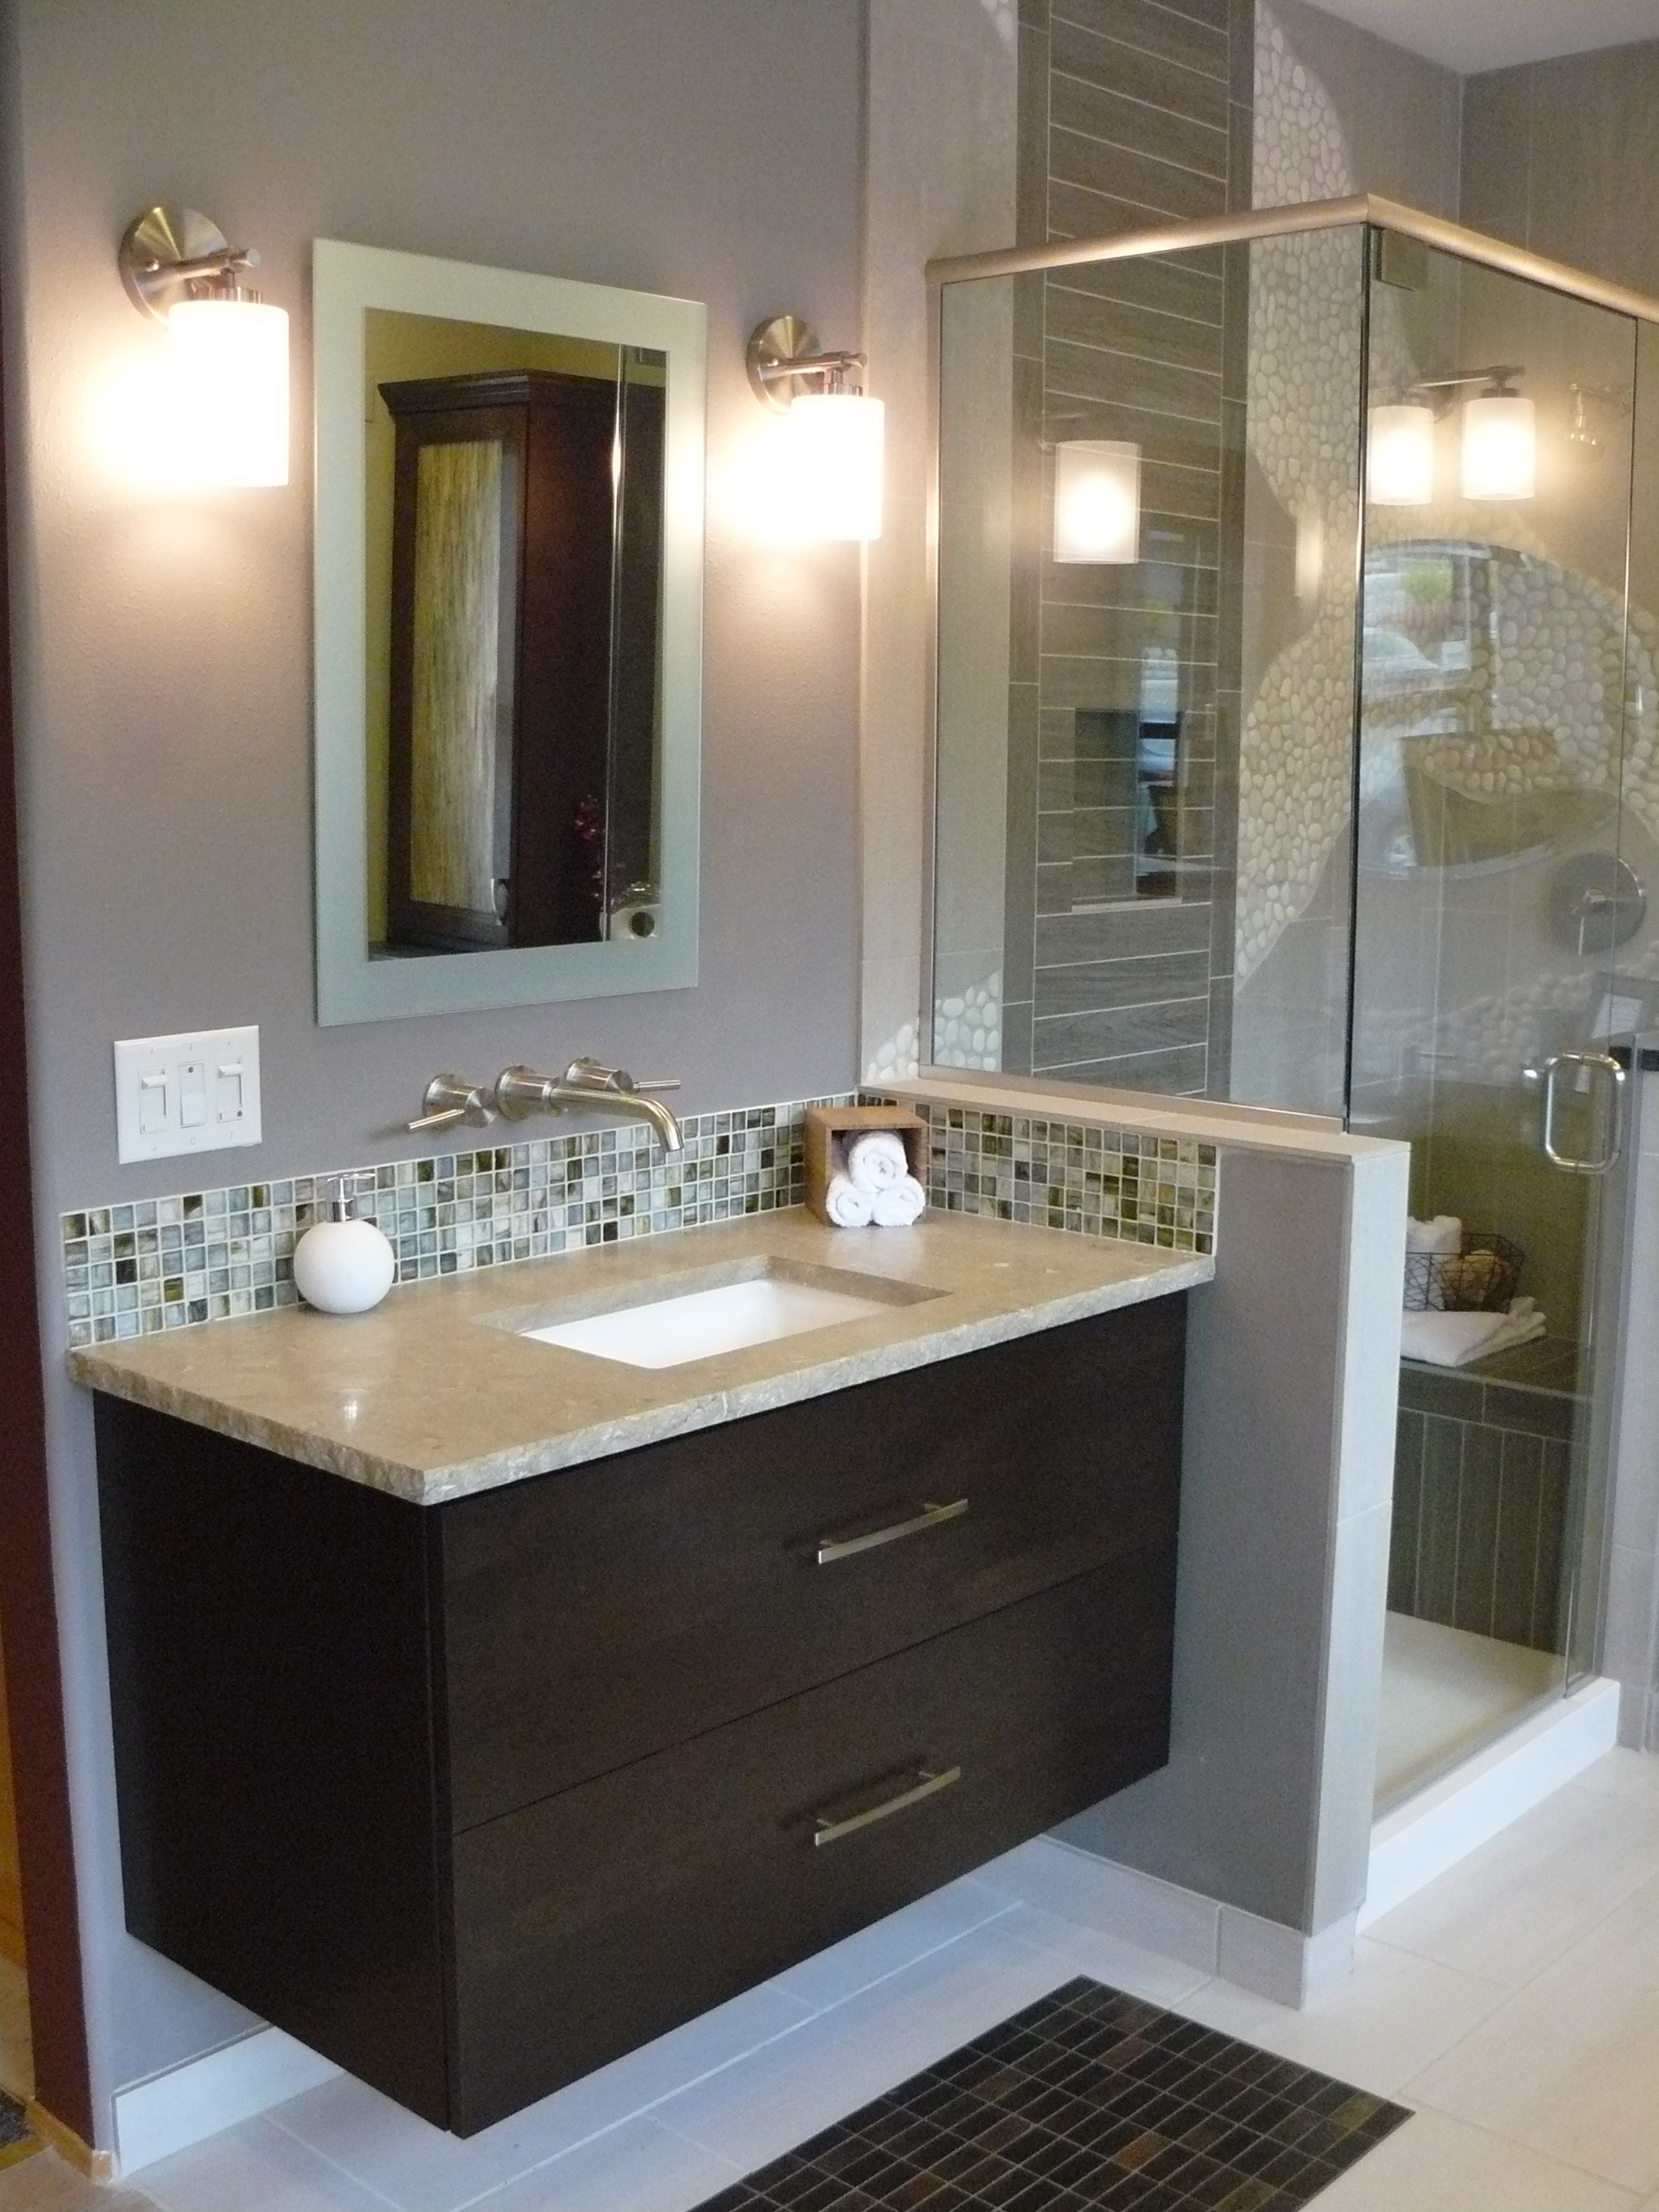 sitting originals seating sit vanities perfect cache at sink down unique modern vanity media design elegant area one bathroom with bathrooms home s mirror makeup